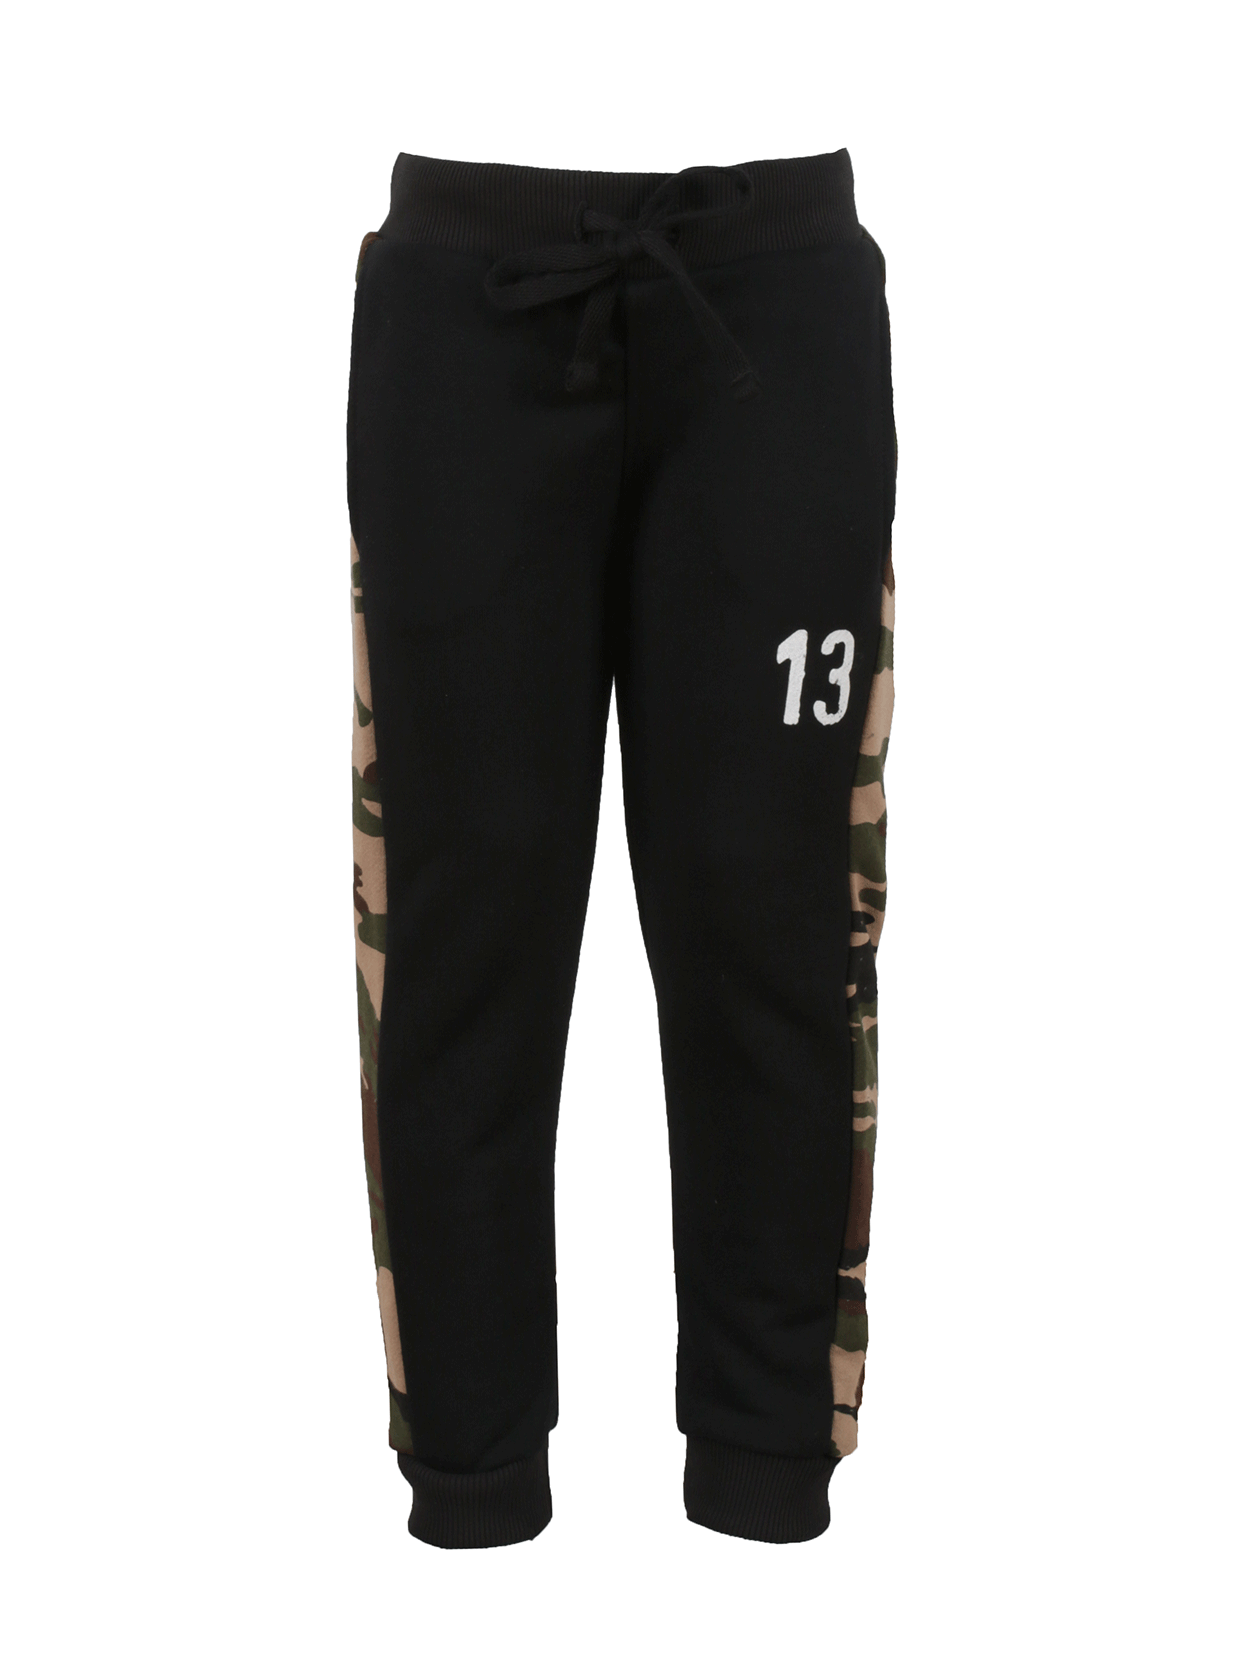 Kids trousers PROPERTY OF RUSSIA<br><br>size: 7-8 years<br>color: Black<br>gender: unisex